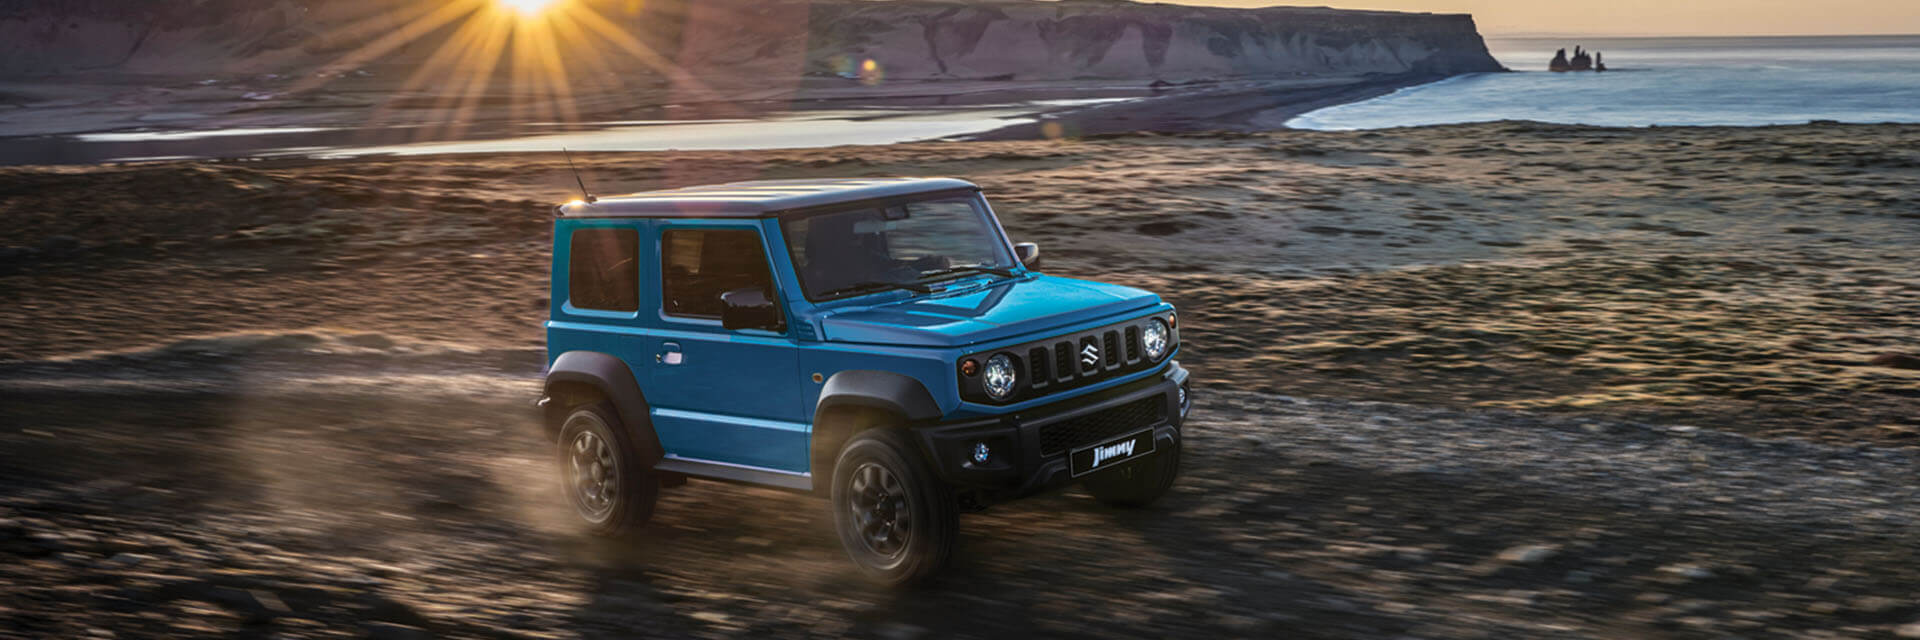 Jimny Overview 4